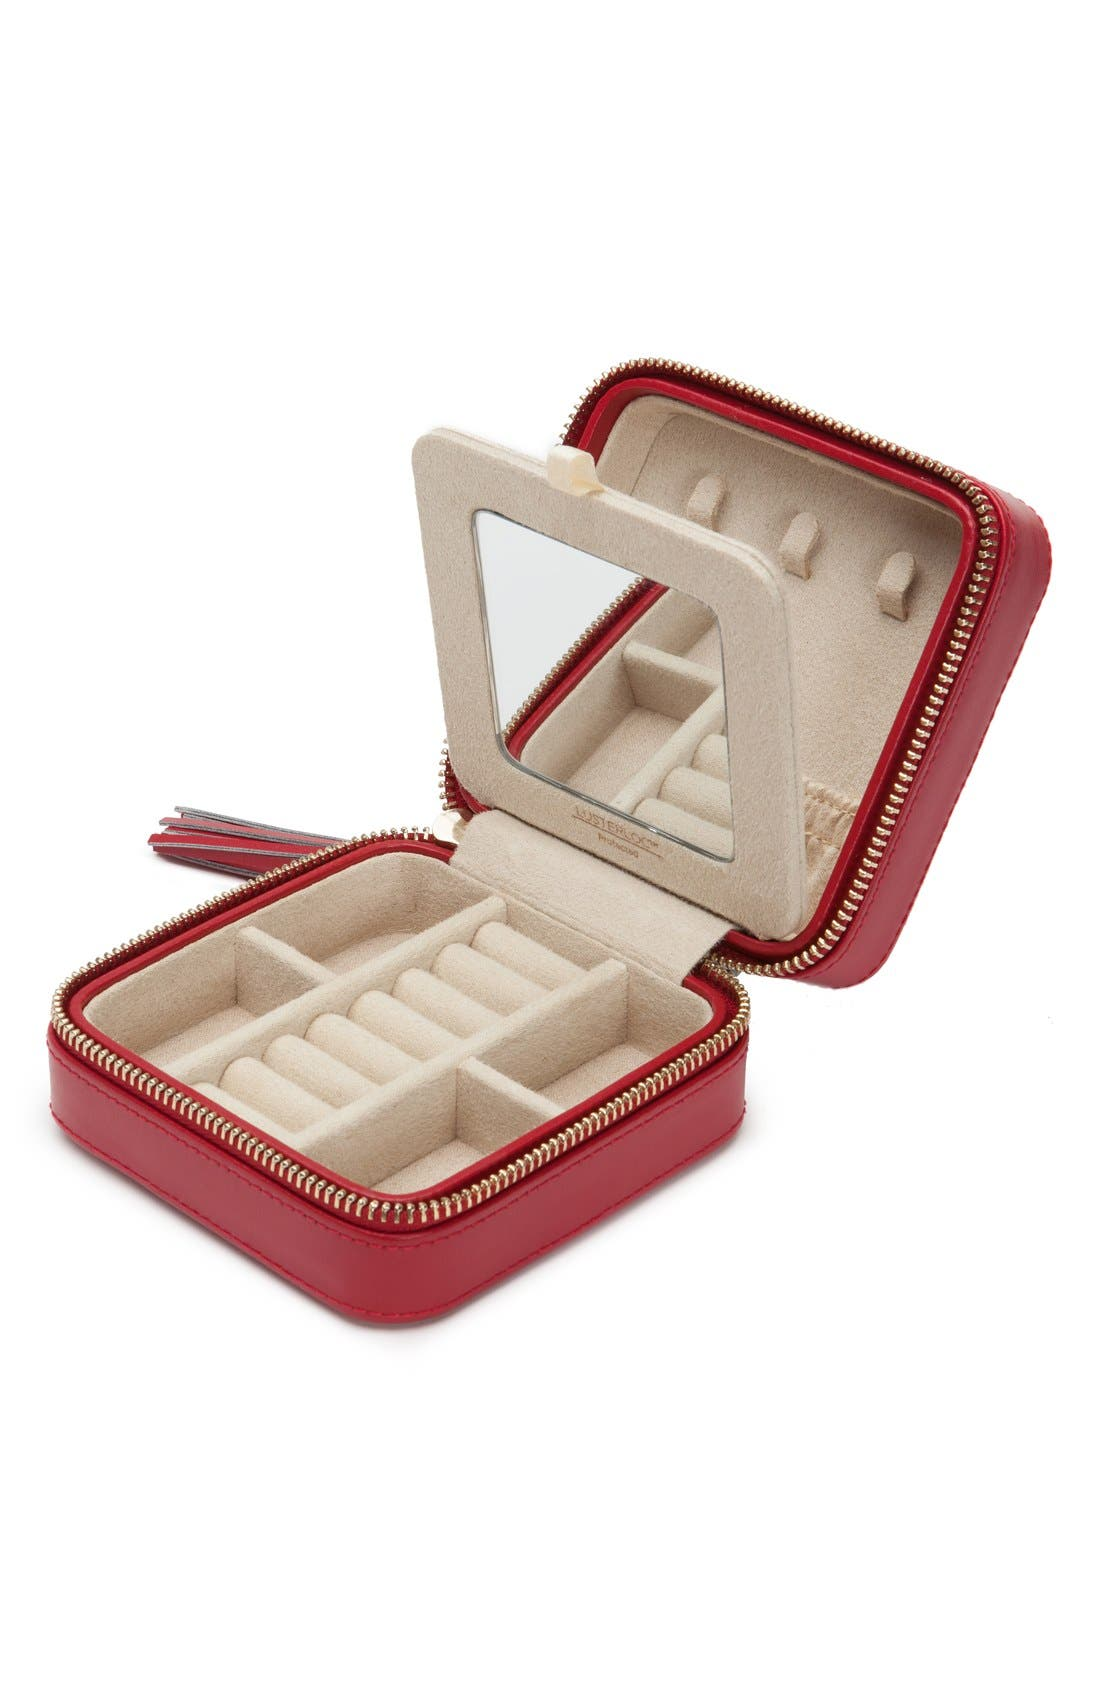 'Caroline' Travel Jewelry Case,                             Alternate thumbnail 3, color,                             RED